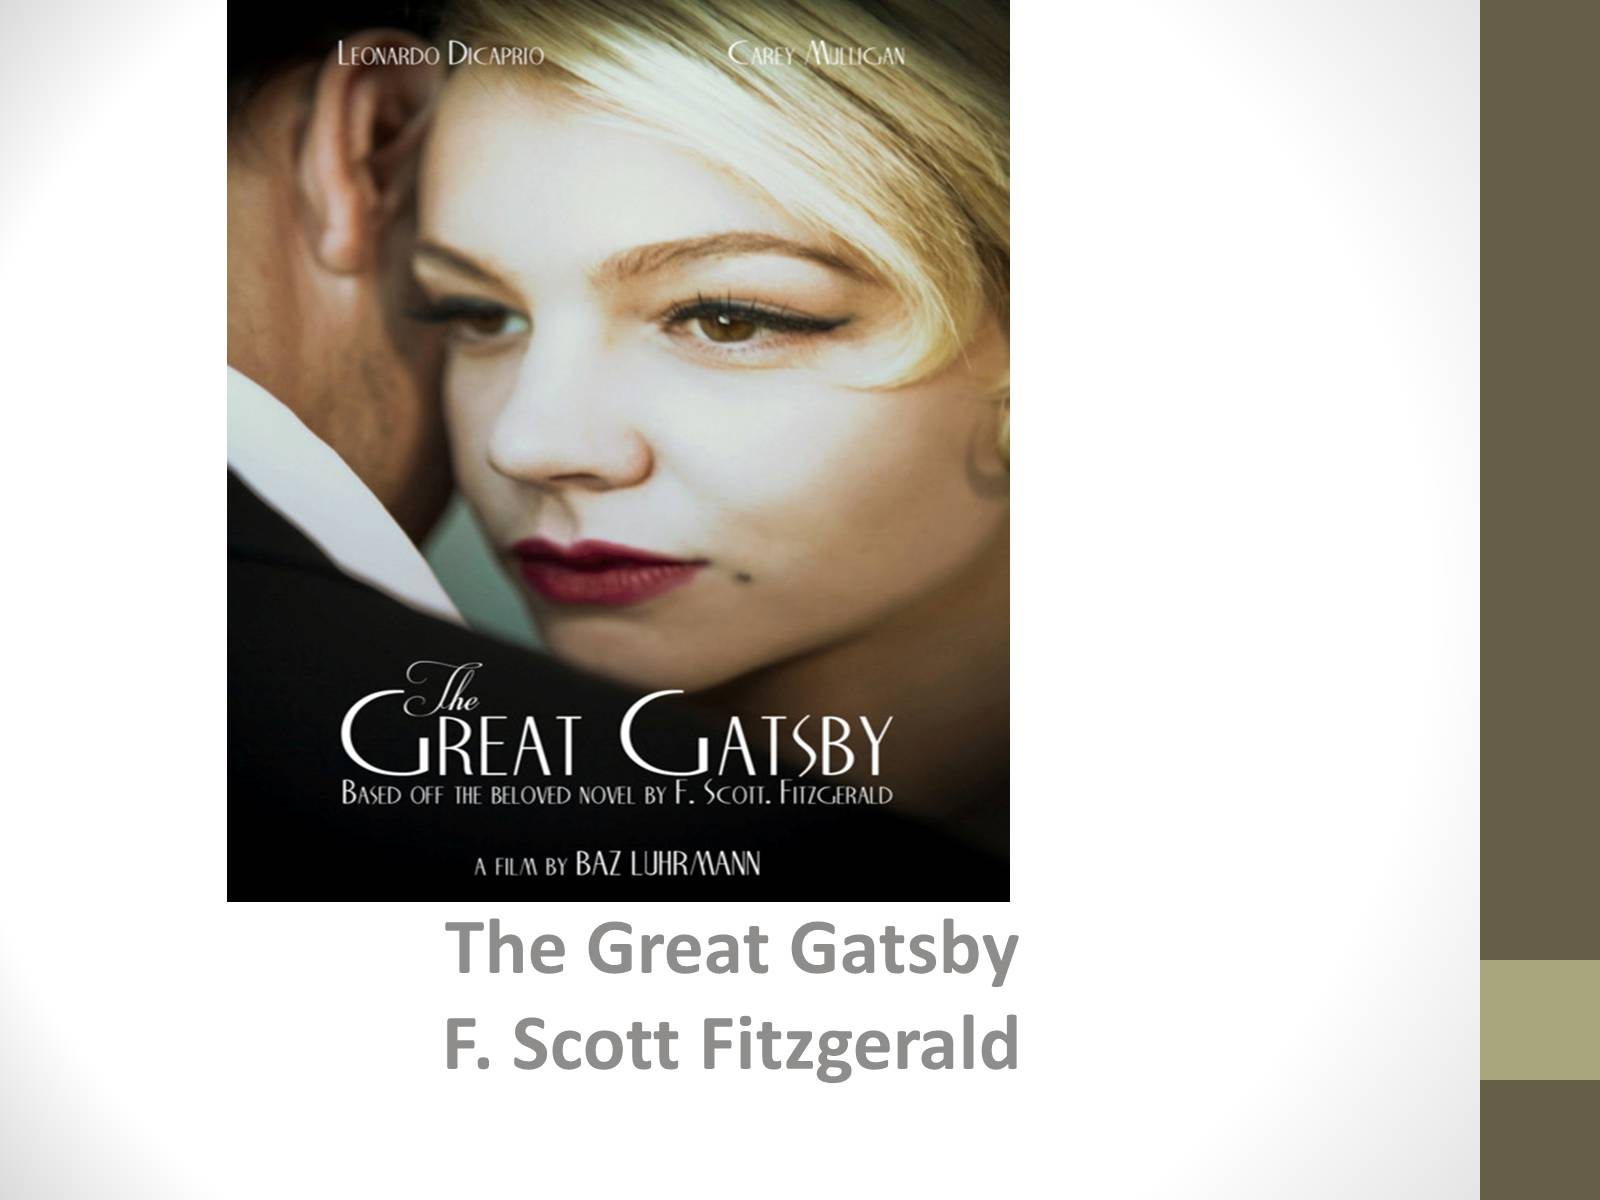 an analysis of ignorance in the great gatsby a novel by f scott fitzgerald Download the great gatsby pdf the great gatsby is a novel by american author f scott fitzgerald the story takes place in 1922, during the roaring twenties, a time of prosperity in the united states after world war i.